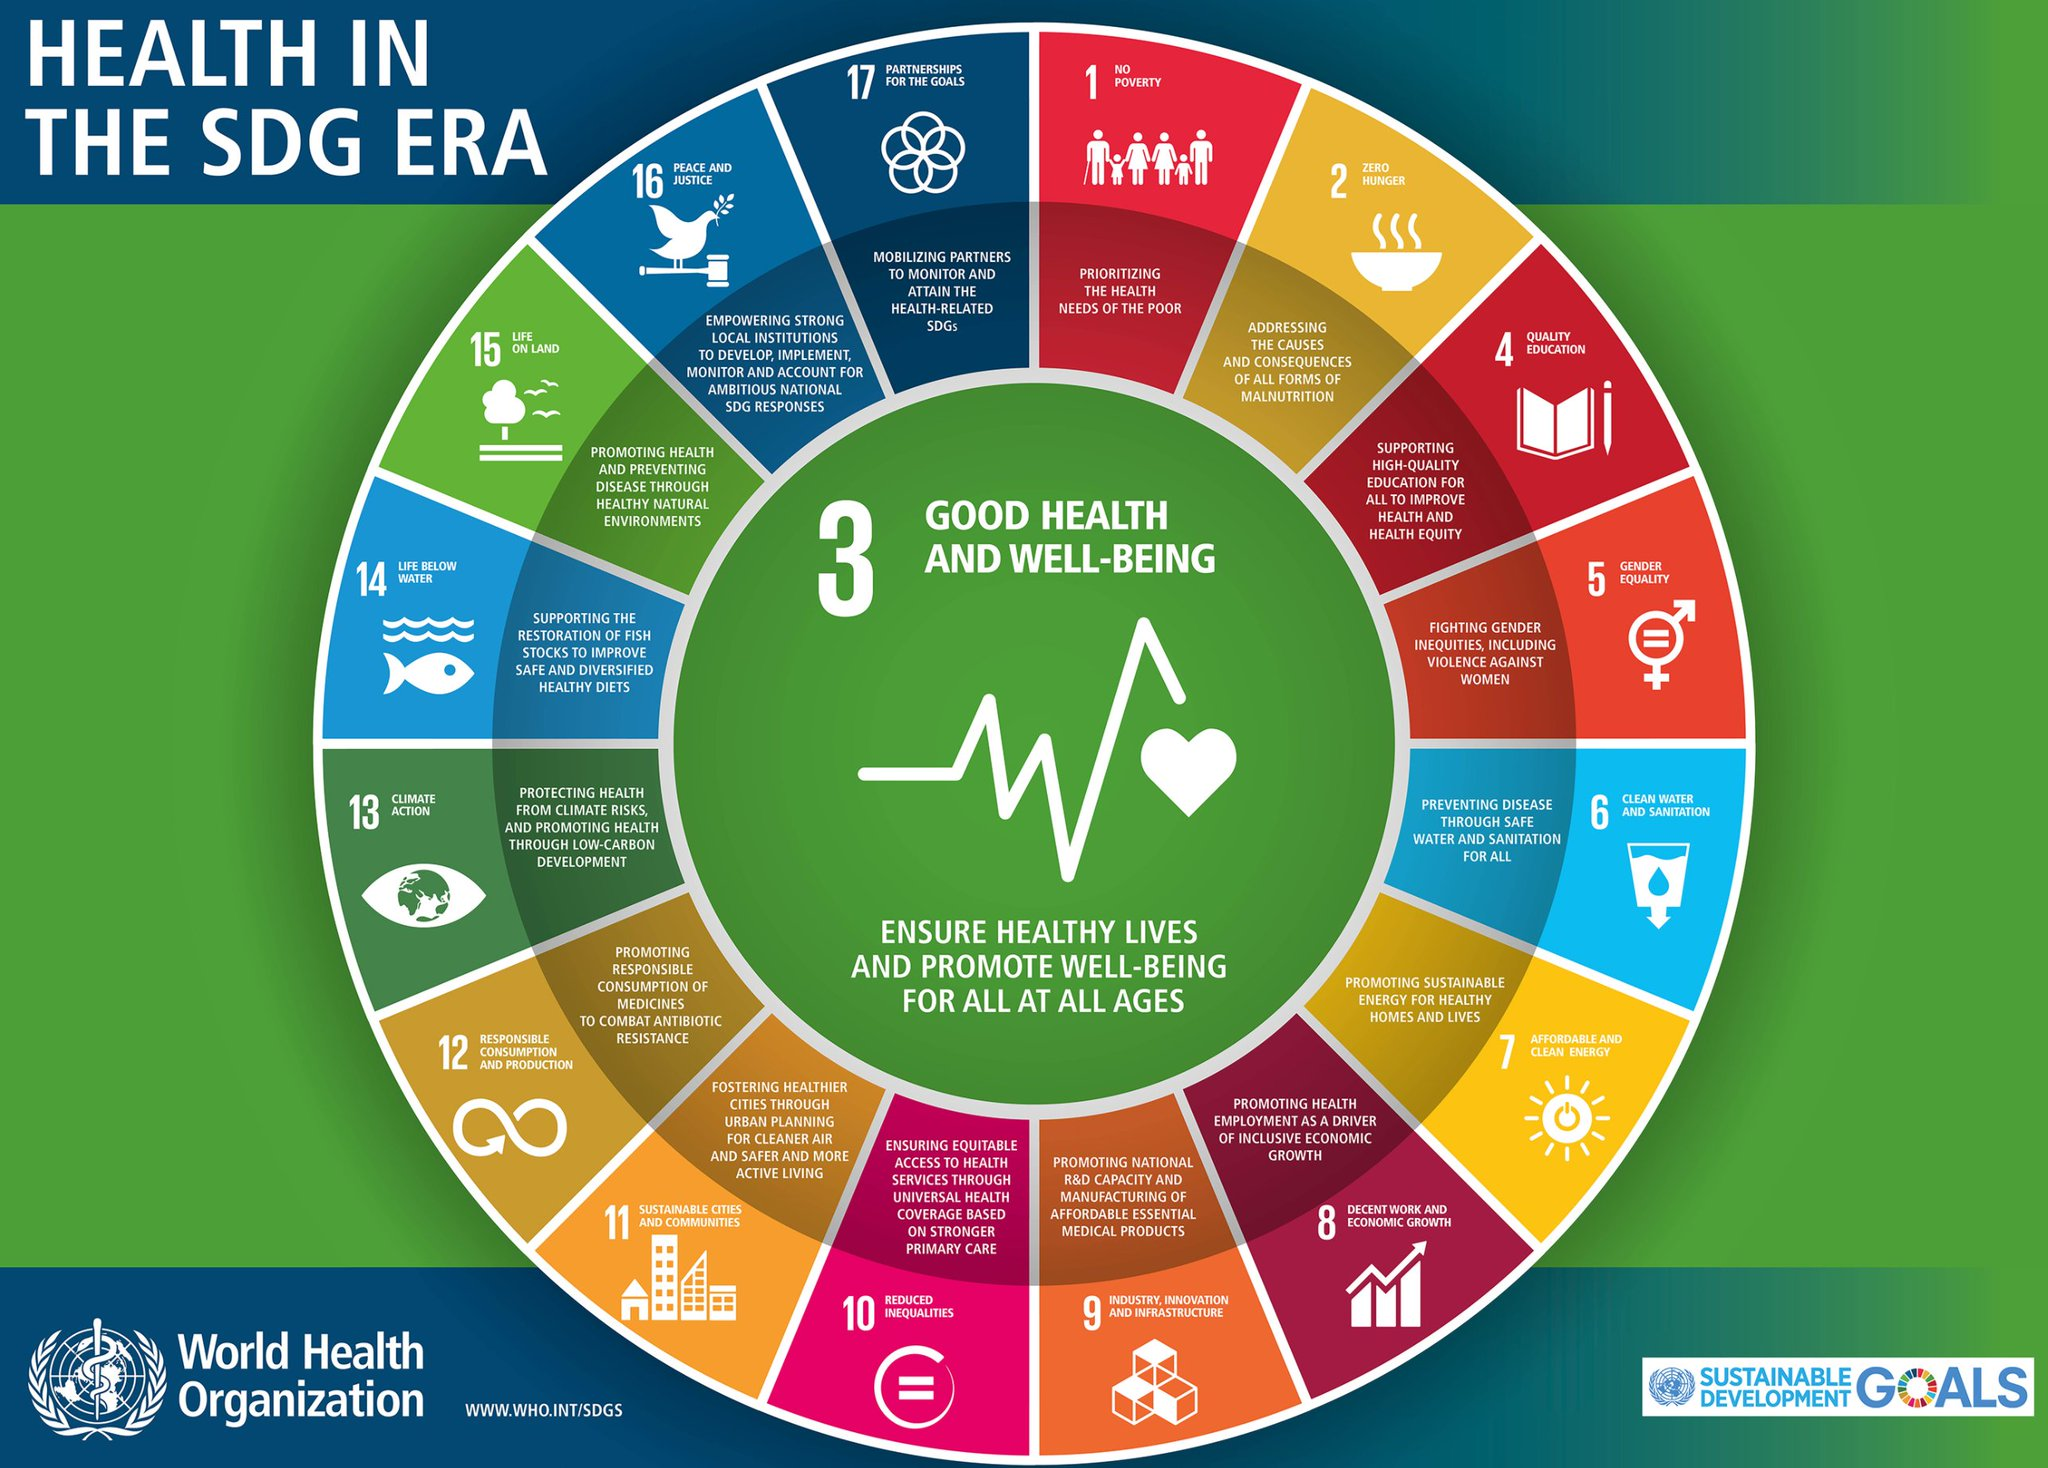 Human health and well-being is at the center of the sustainability development goals #shinesummit #SDGs https://t.co/6cBDFbxkF7